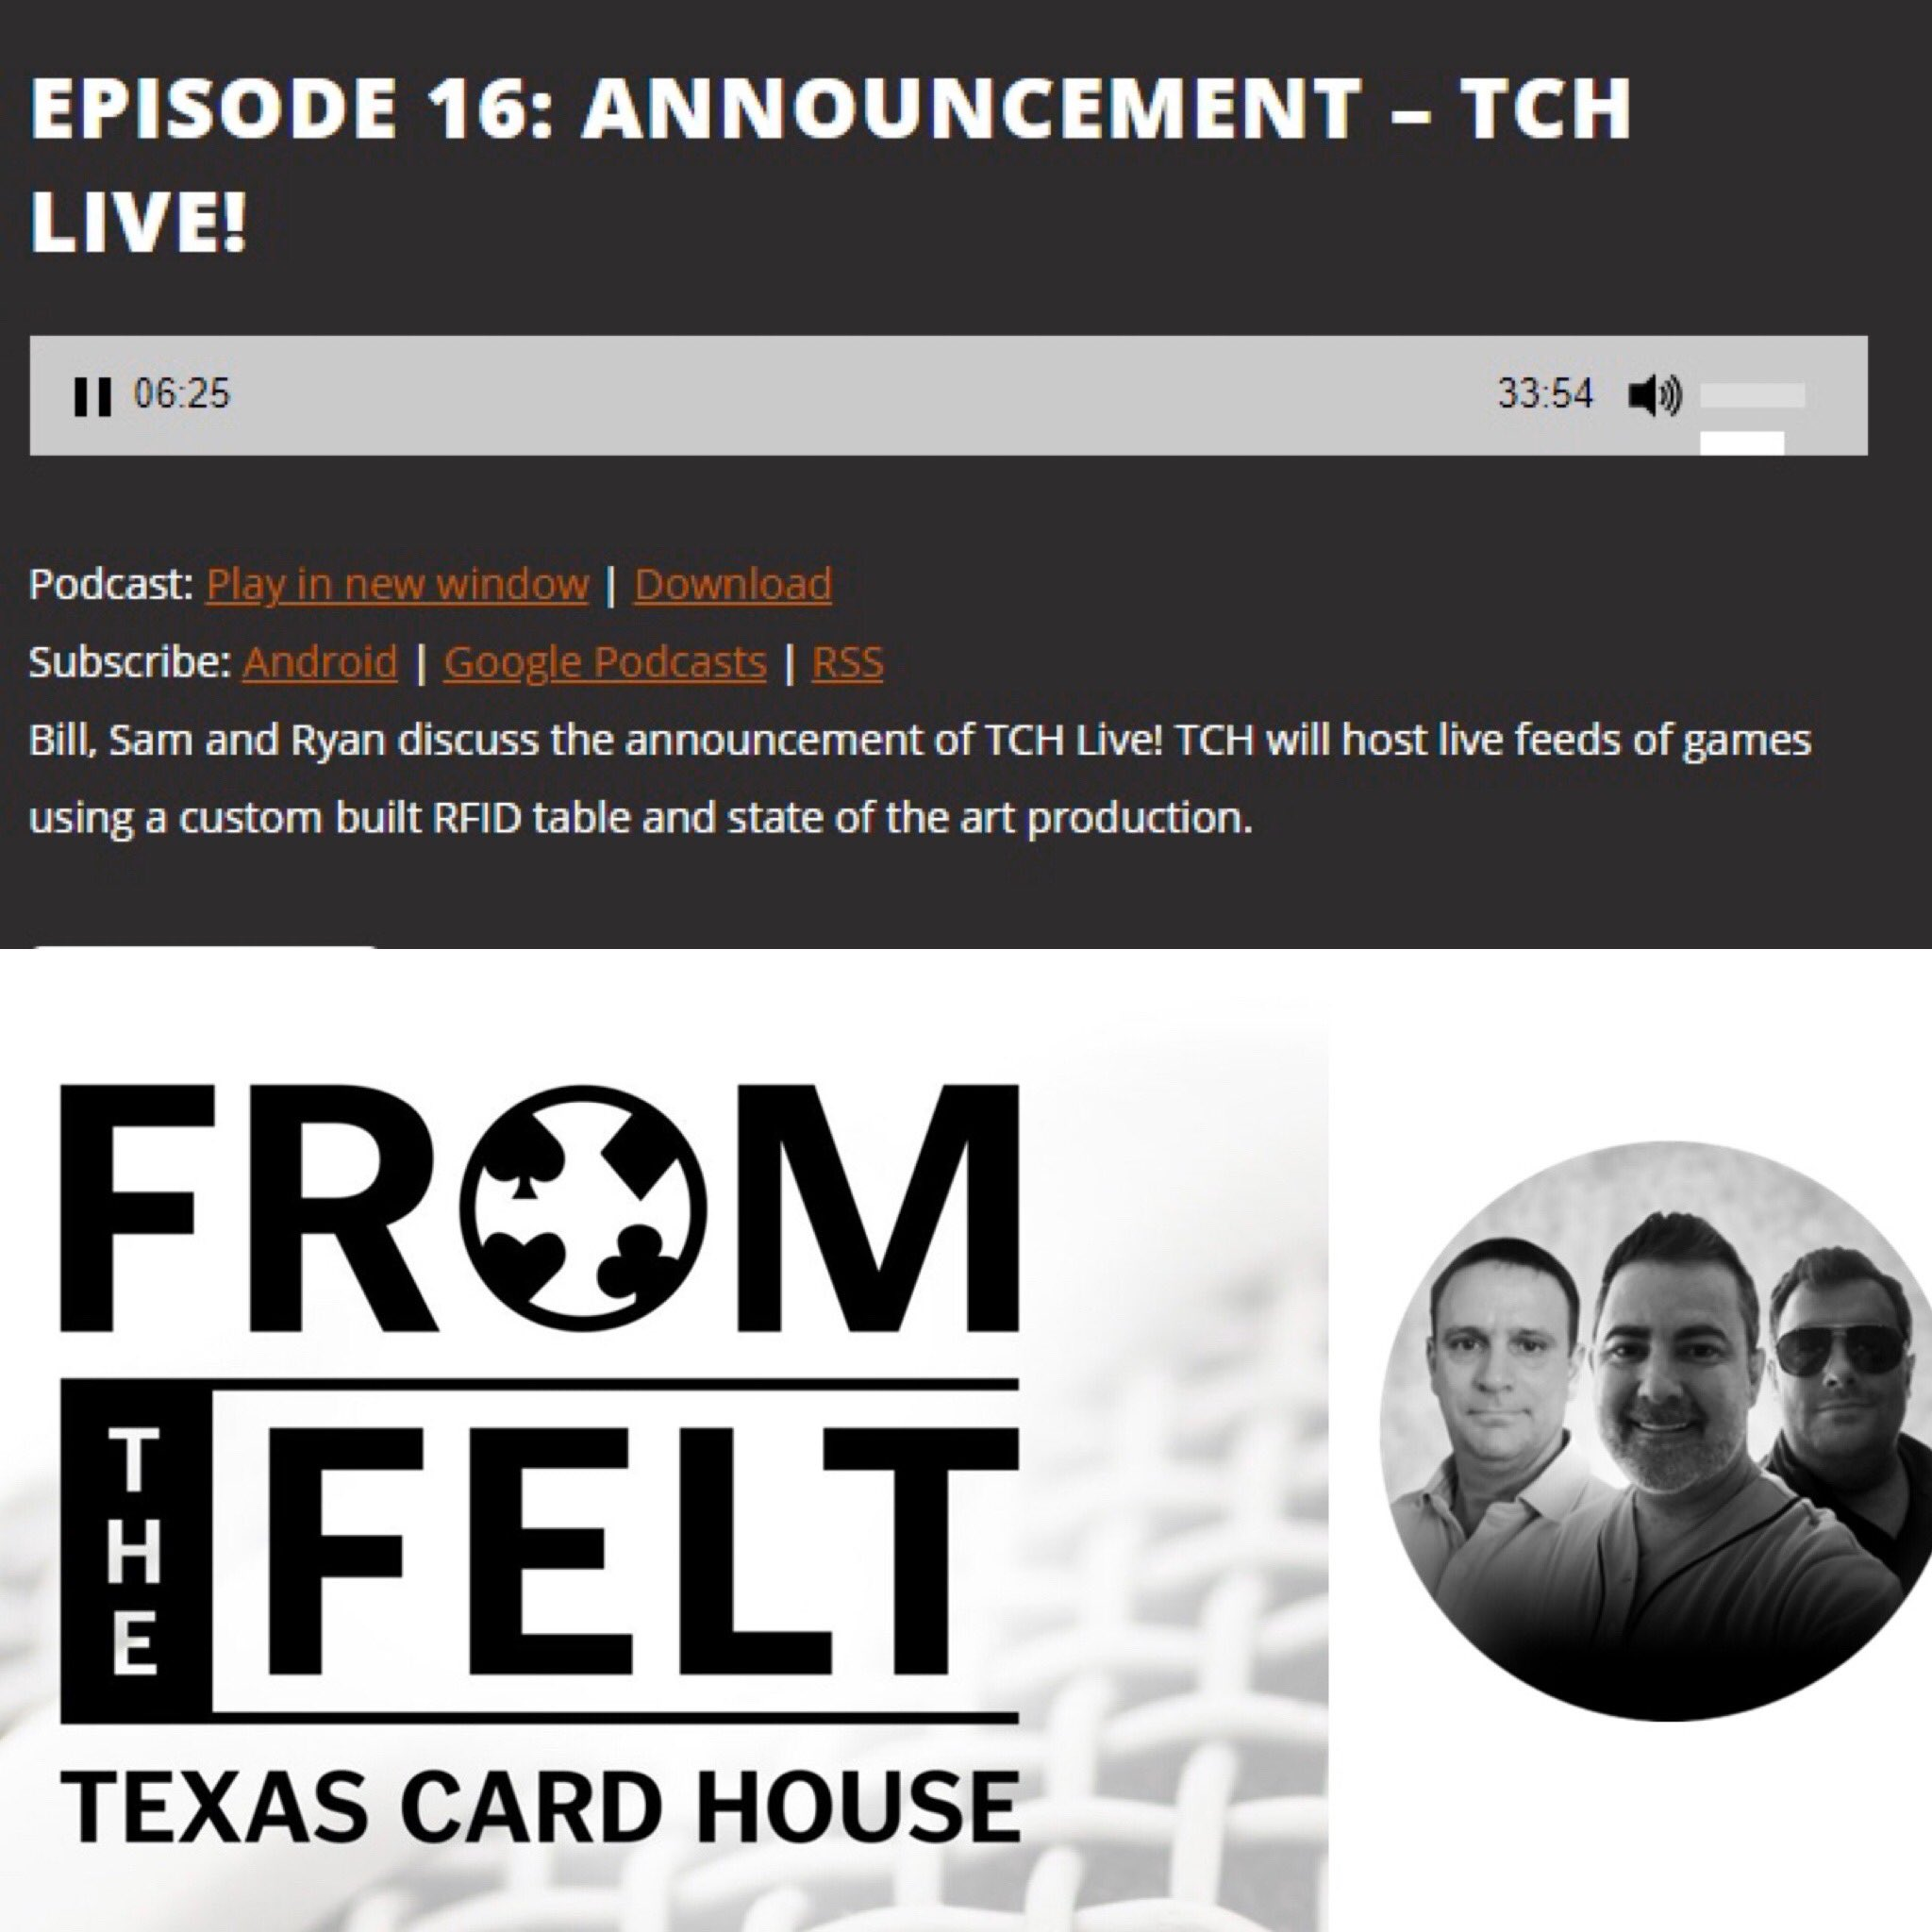 """Texas Card House on Twitter: """"https://t.co/fqikeVdB2j NEW From The Felt  Podcast! Episode 16: Announcement-TCH LIVE! Bill, Sam and Ryan discuss the  announcement of TCH Live! TCH will host live feeds of games"""